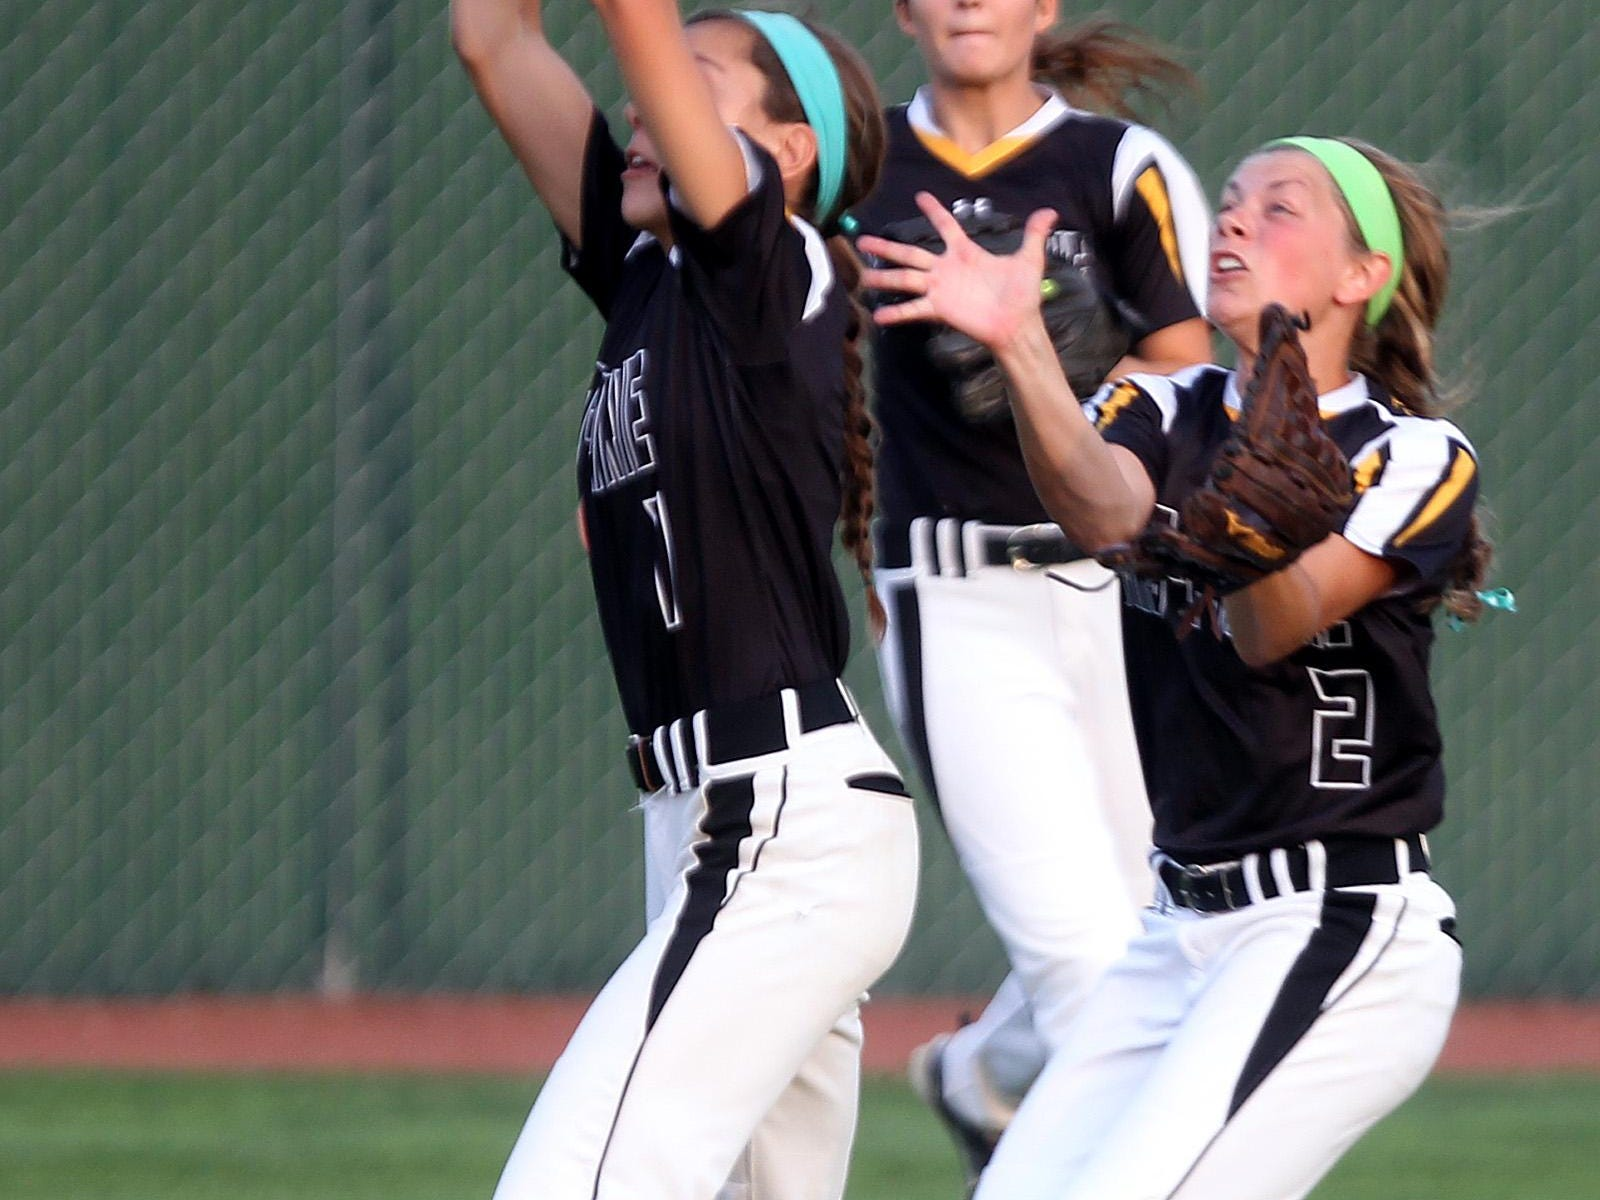 Mid-Prairie's Alex Rath avoids Lexi Duwa and catches the ball in centerfield during their regional game against Mid-Prairie at Solon on Friday, July 10, 2015. David Scrivner / Iowa City Press-Citizen